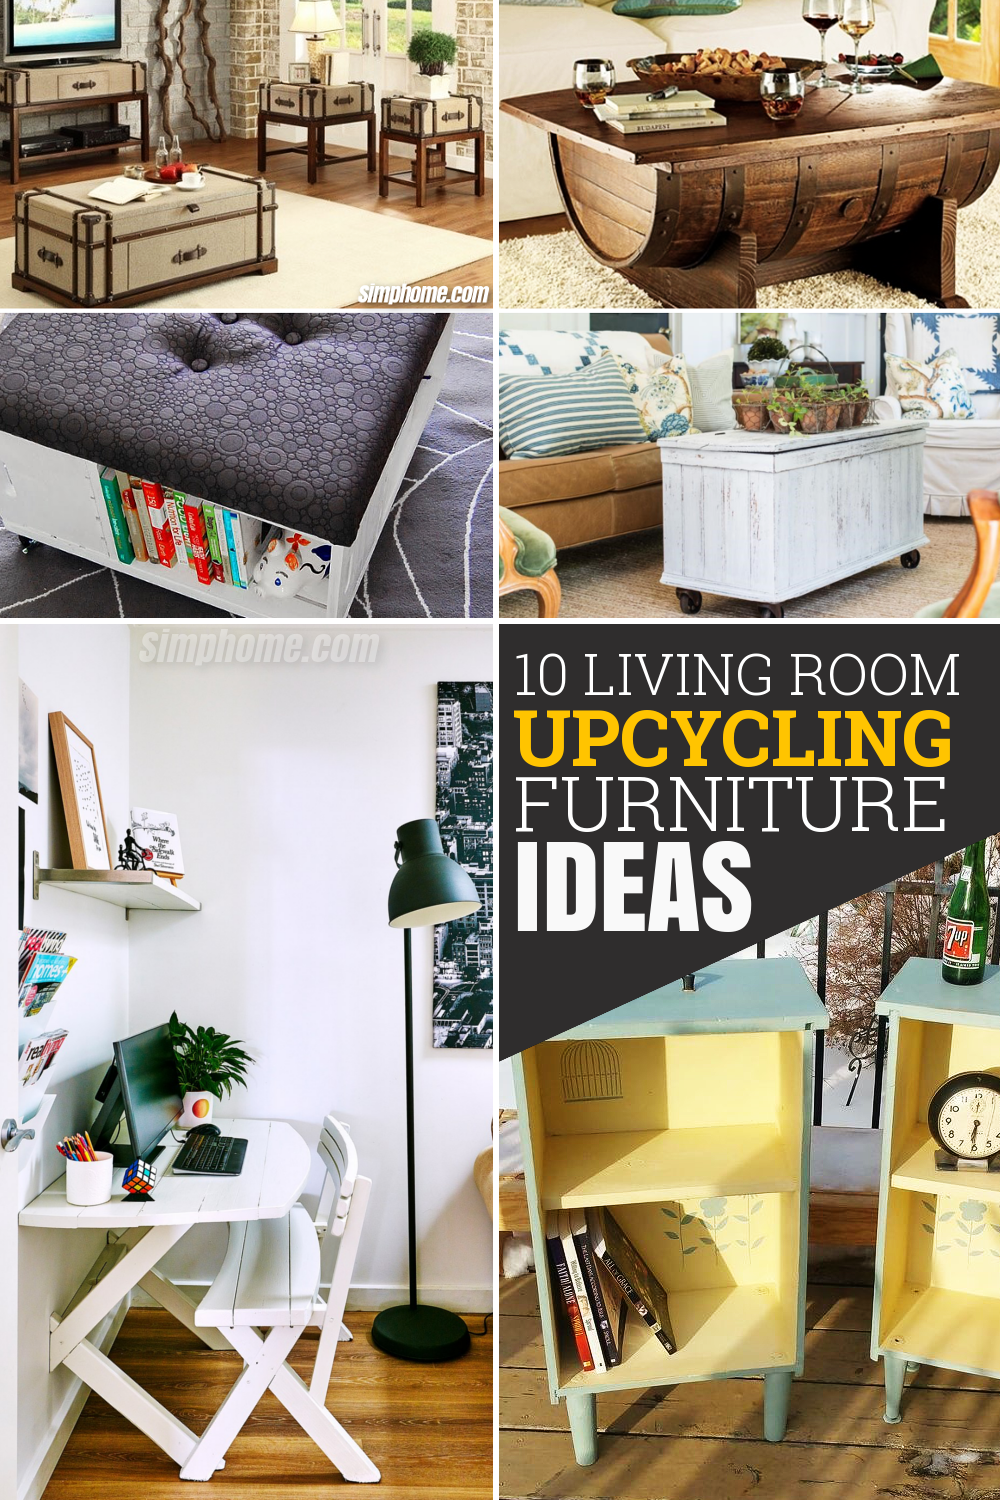 10 Living Room Upcycled Furniture Ideas via Simphome com Pinterest Featured Image